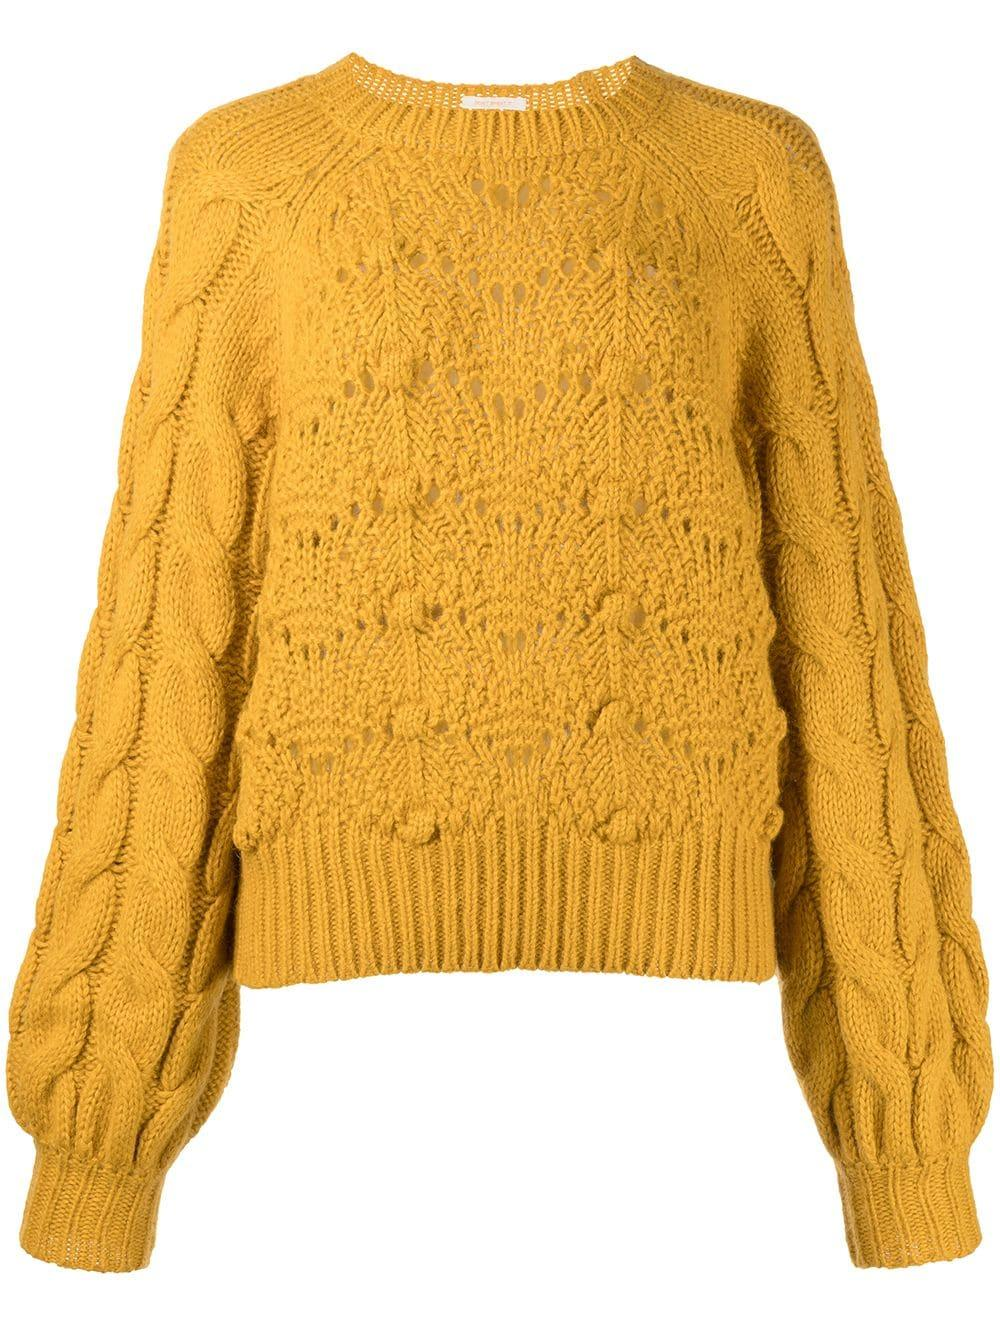 The Bell Sleeve Crop Sweater Item # 8336-996